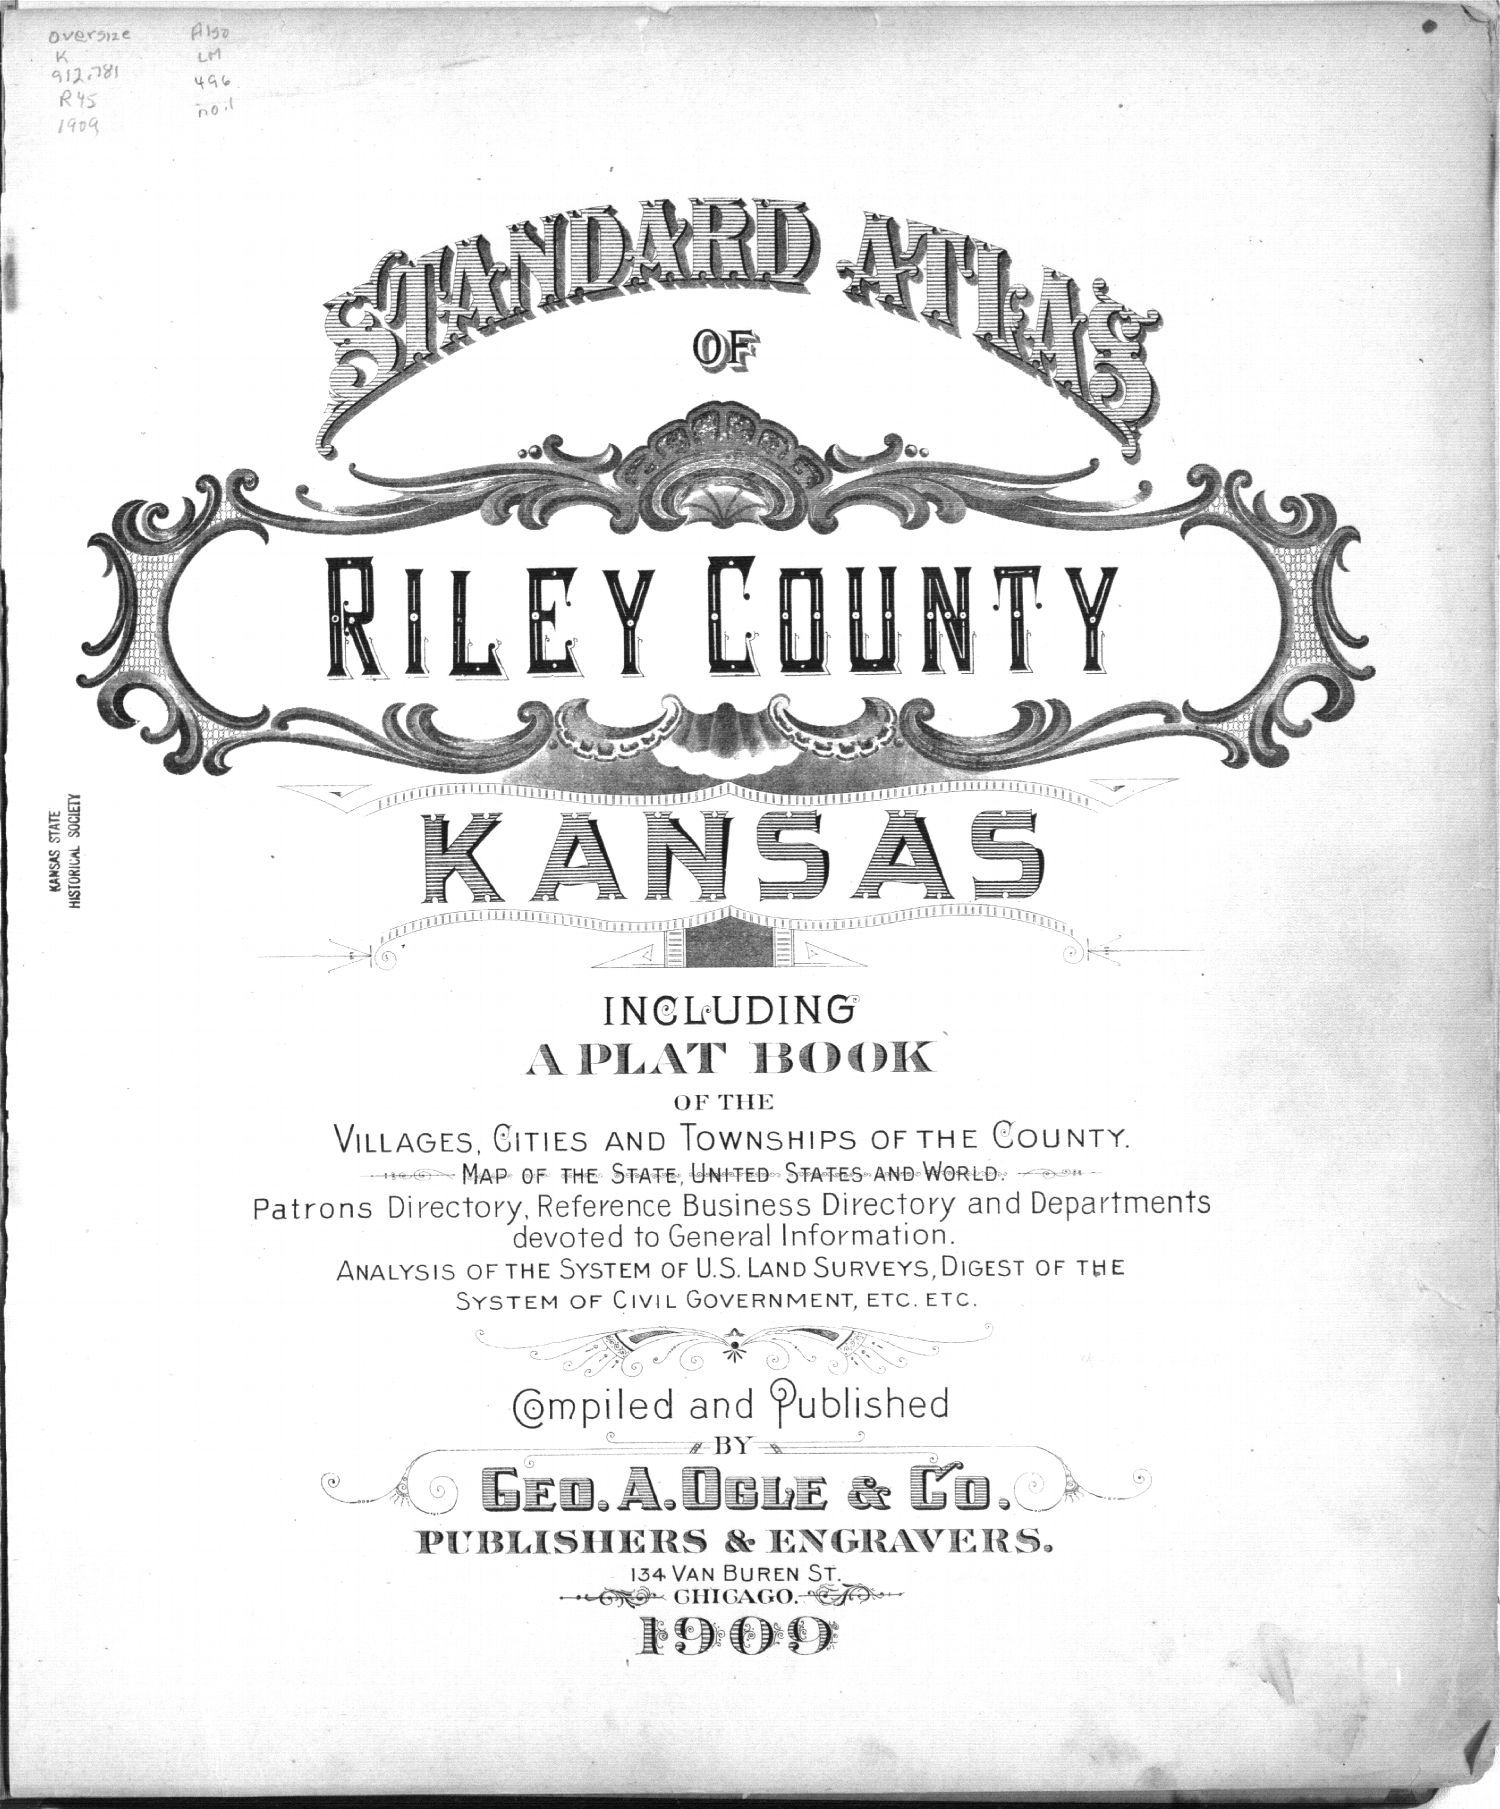 Standard atlas of Riley County, Kansas - Title Page